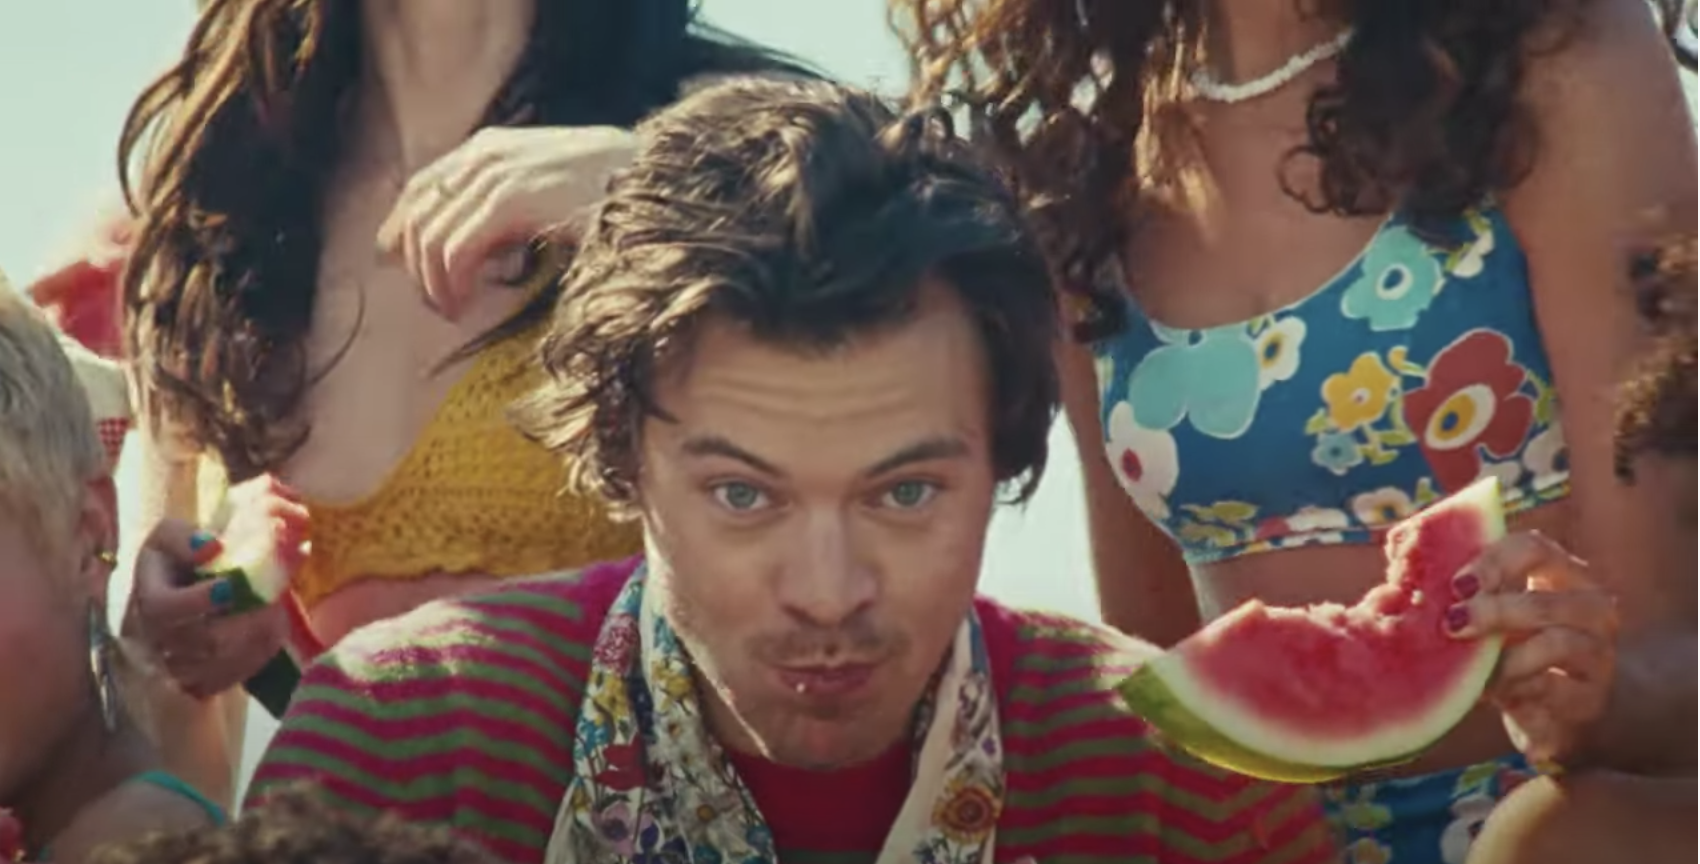 Harry Styles Watermelon Sugar Music Video Has Twitter Hot And Bothered